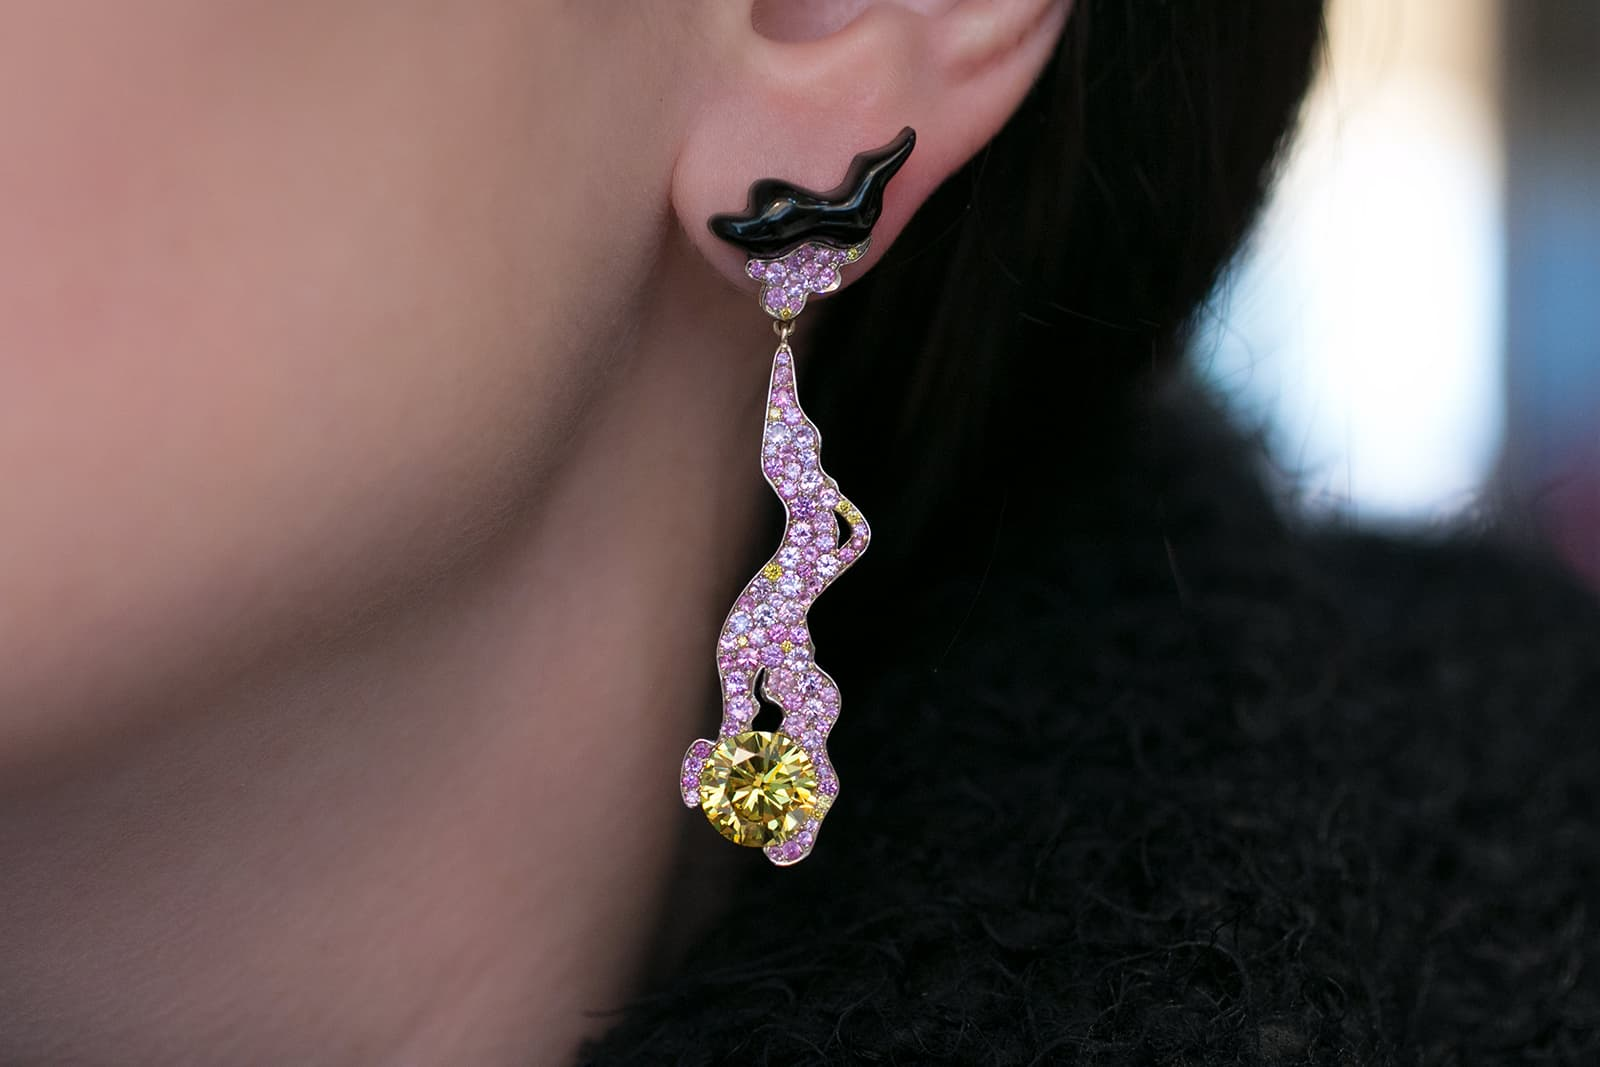 Joseph Ramsay 'The Fabric of Jewellery' collection 'Nymph' earrings with a pair of Fancy Vivid Yellow round brilliant cut diamonds weighing 3.01ct each, pink sapphires and black jet burns in blackened yellow gold